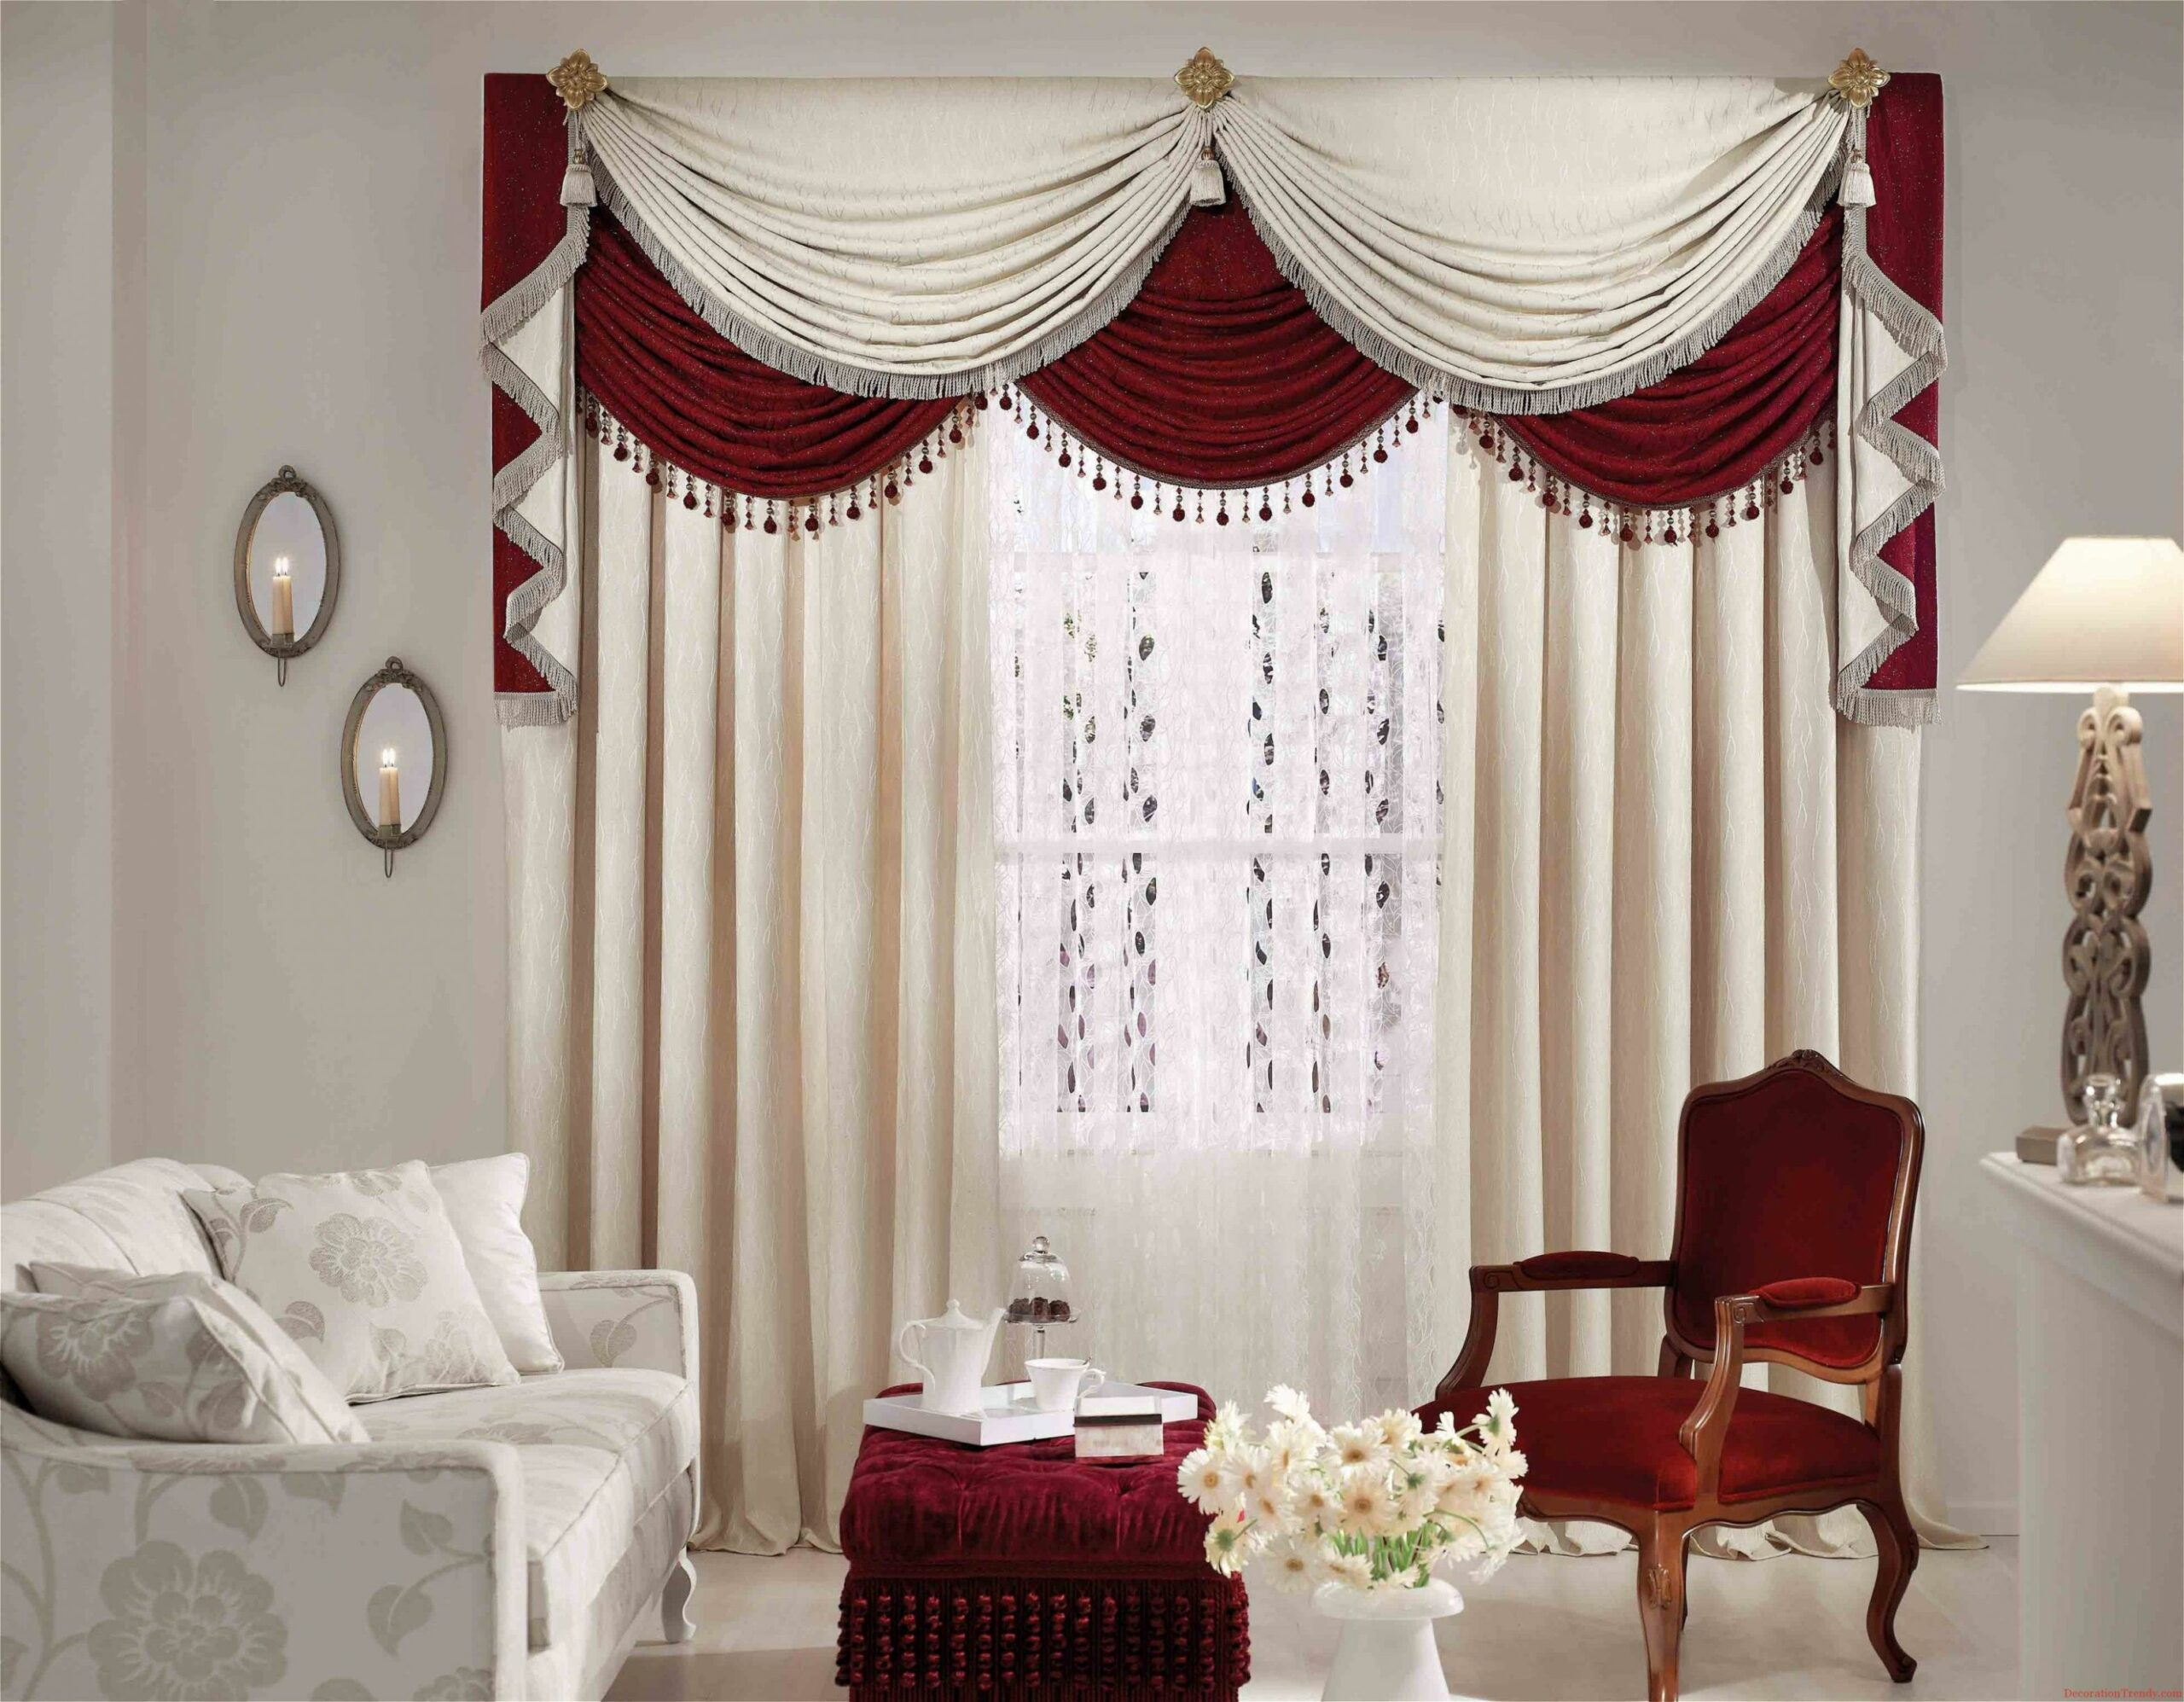 12+ Incredible Family Room Curtain Ideas (With images)   Living ..